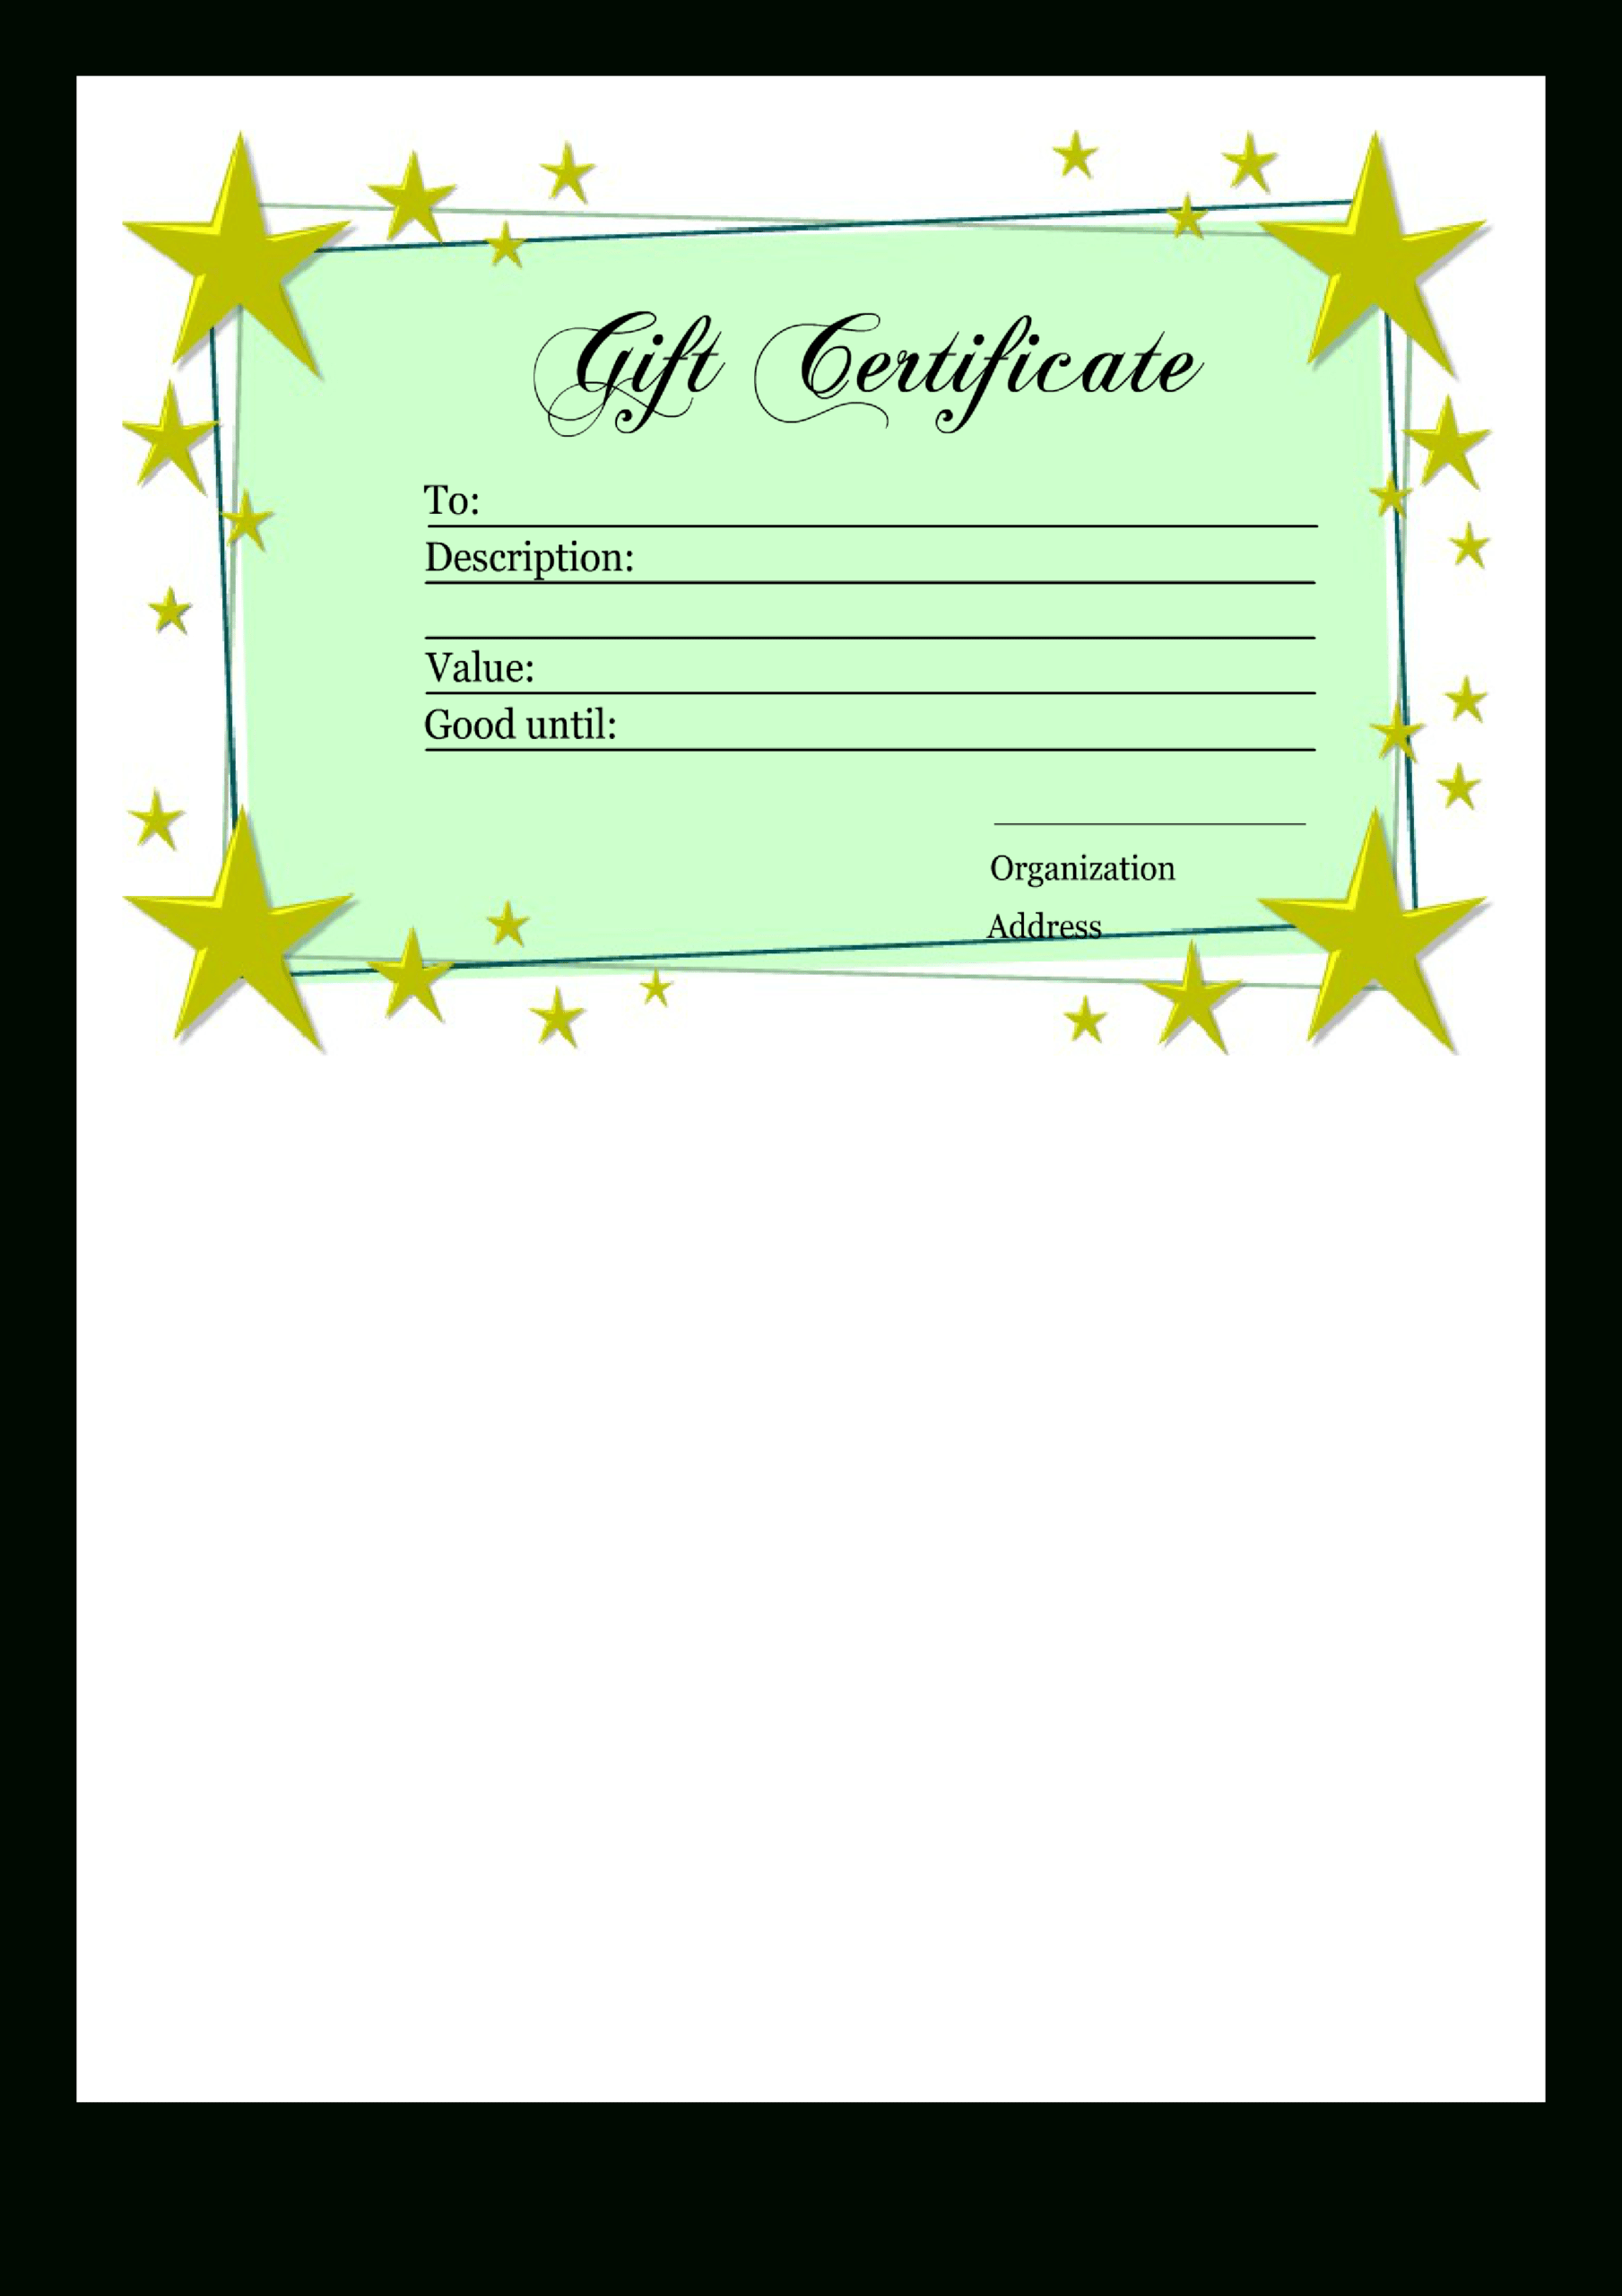 Homemade Gift Certificate Template | Templates At Throughout Homemade Gift Certificate Template